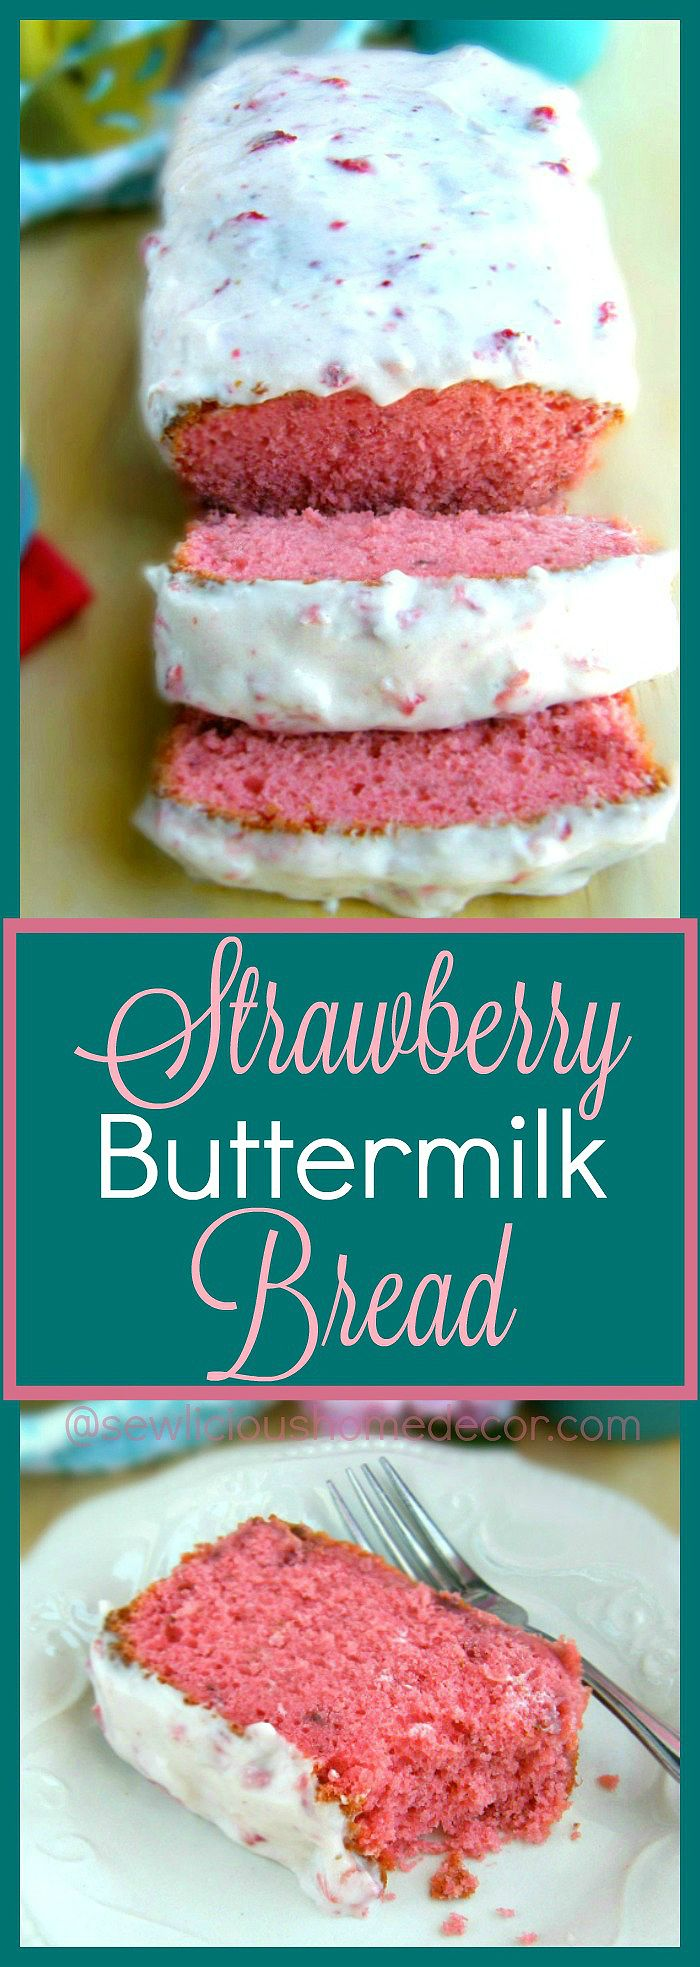 BUTTERMILK STRAWBERRY CAKE A light and sweet Buttermilk Strawberry Cakebursting with delicious strawberry flavor made with strawberry gelatin and fresh strawberry's, topped with a strawberry cream cheese icing. You are going to looooove this strawberry cake. There's strawberry cake and then there's STRAWBERRY CAKE! Want to know the secret ingredients that makes it taste like … … Continue reading →